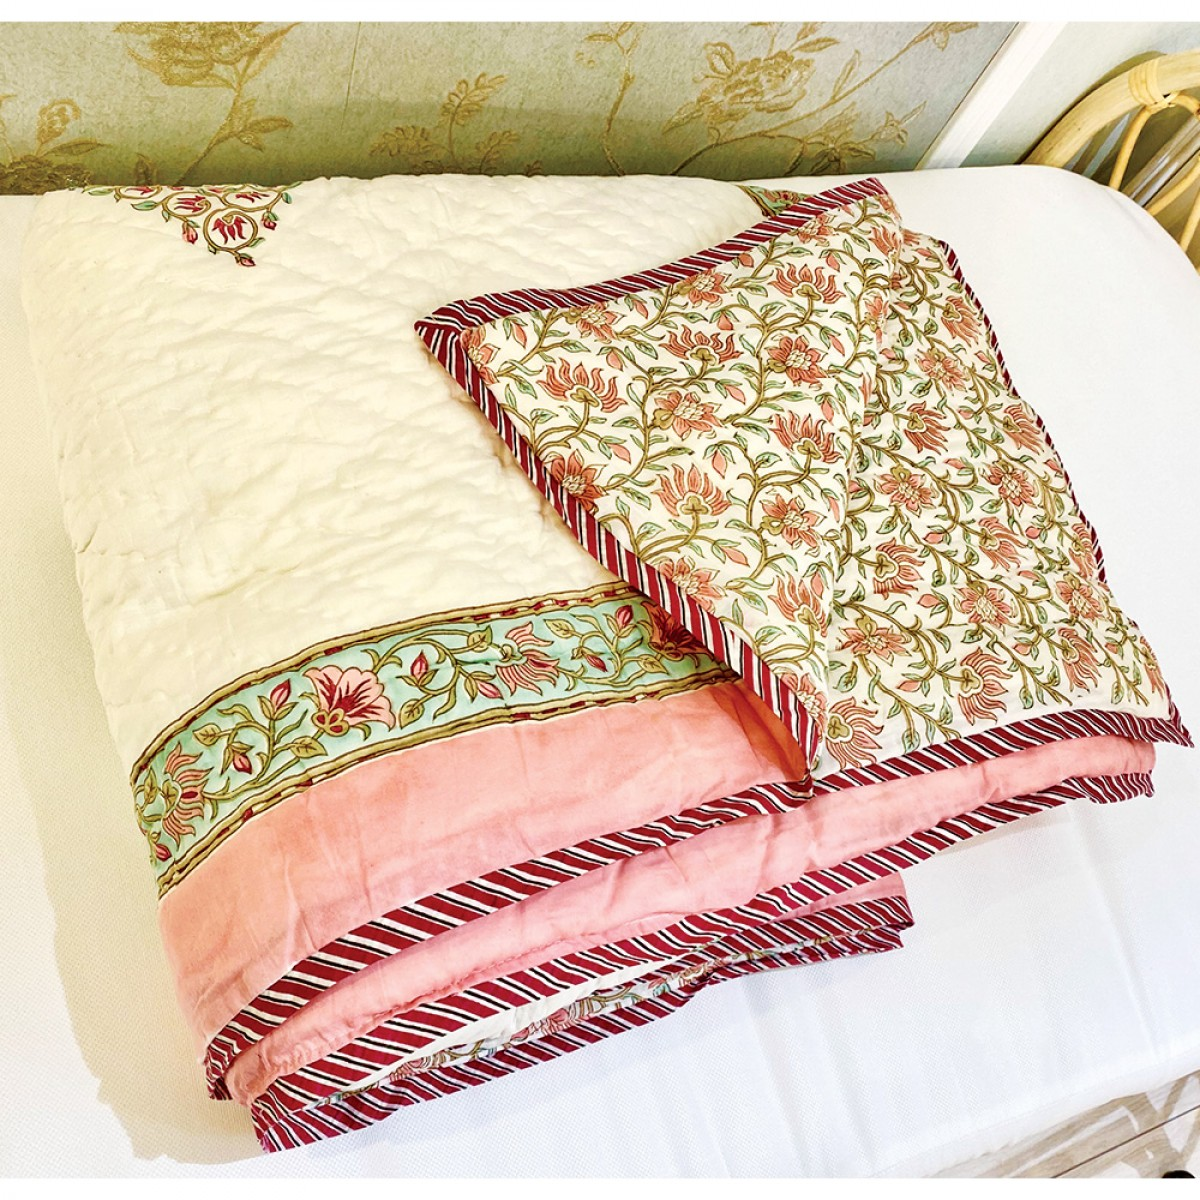 100% Cotton Hand Block Printed Queen Size Quilts - Coral Blossom